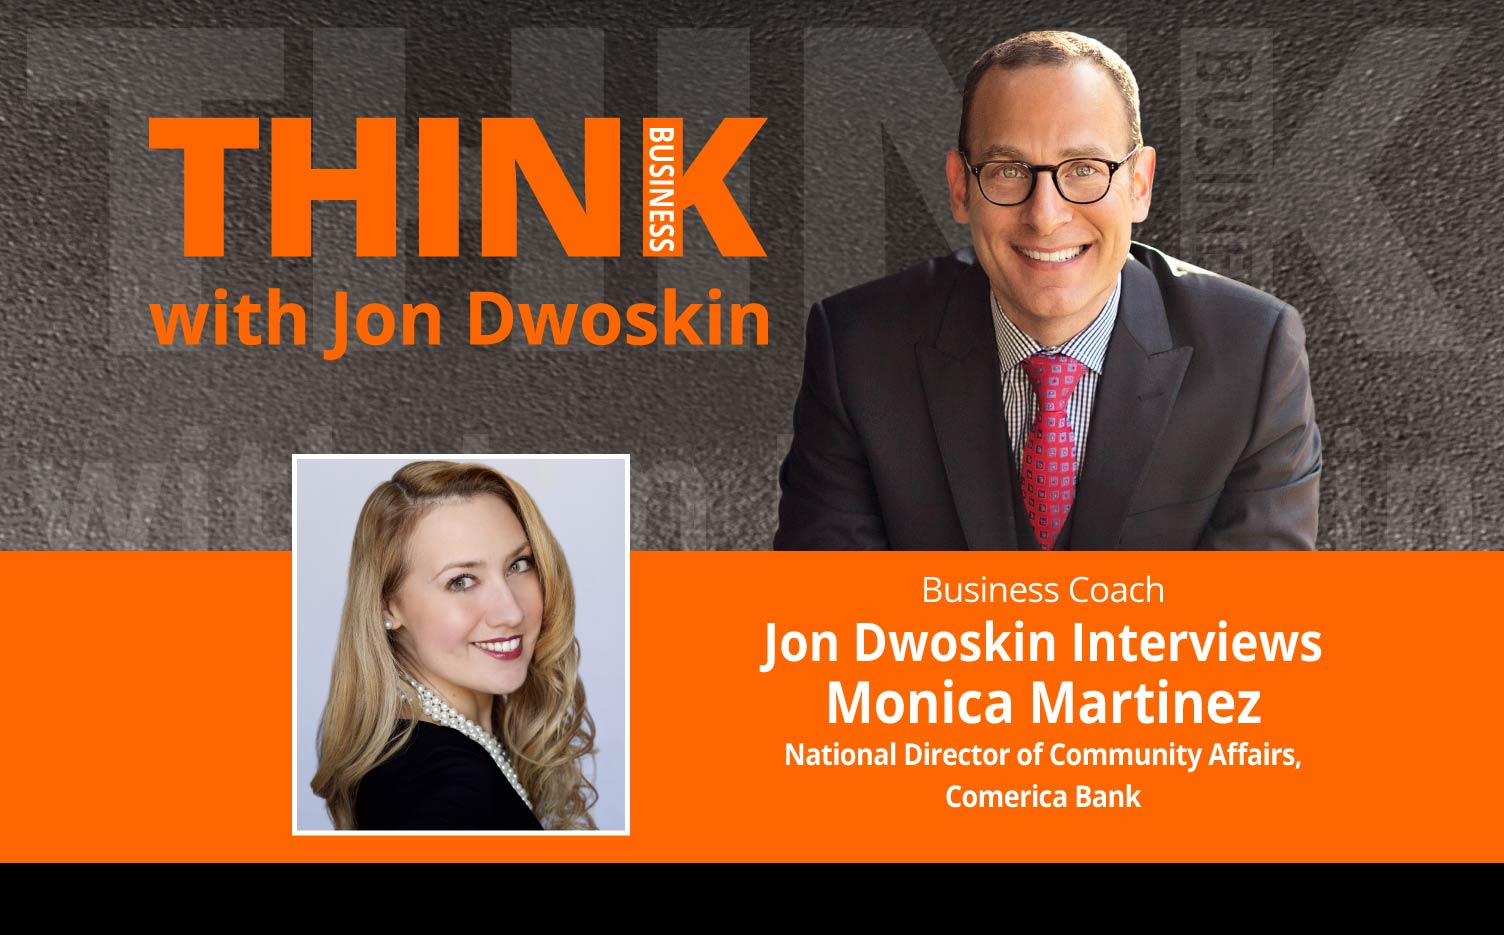 THINK Business Podcast: Jon Dwoskin Interviews Monica Martinez, National Director of Community Affairs, Comerica Bank